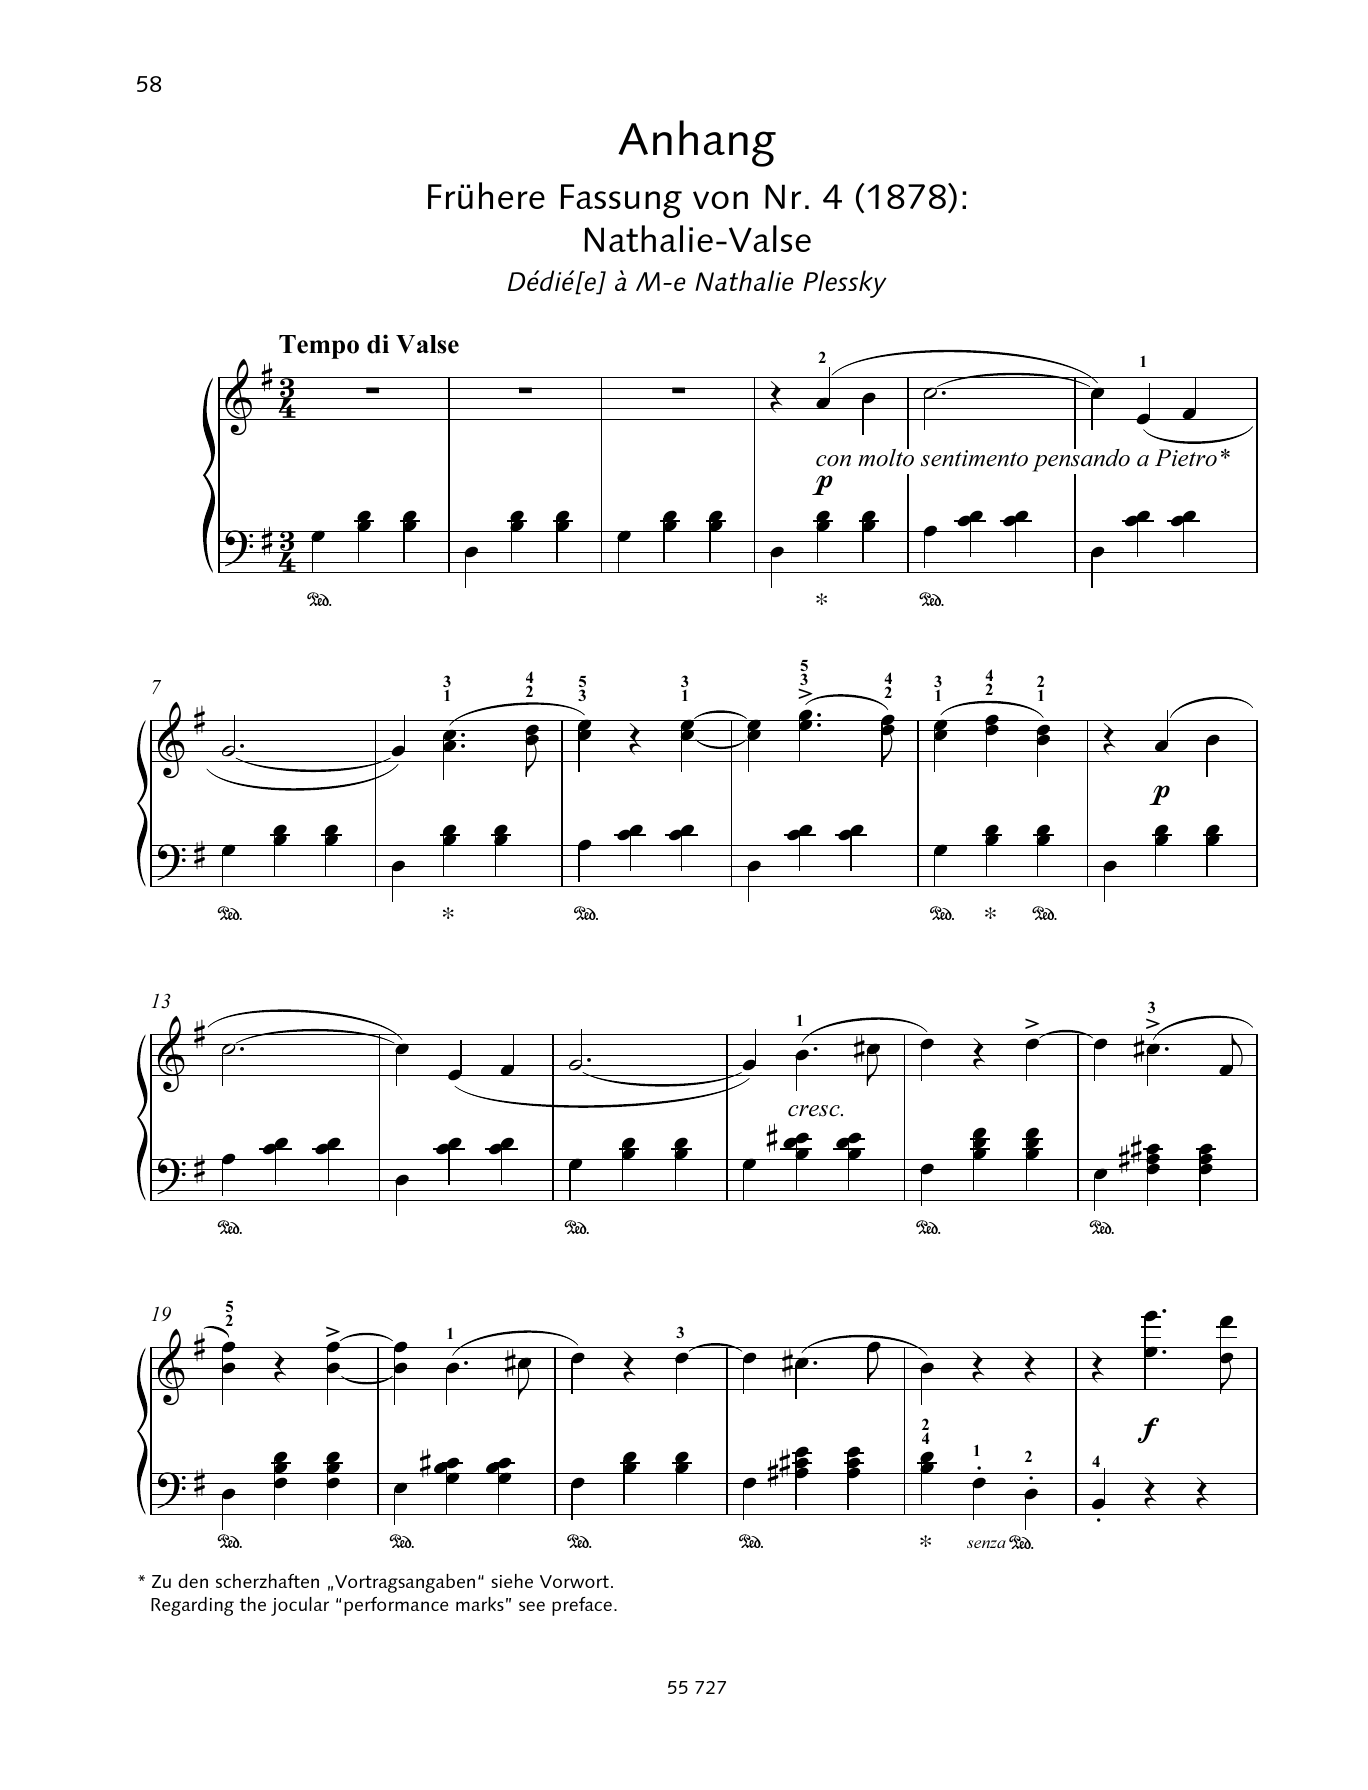 Natha-Valse Sheet Music